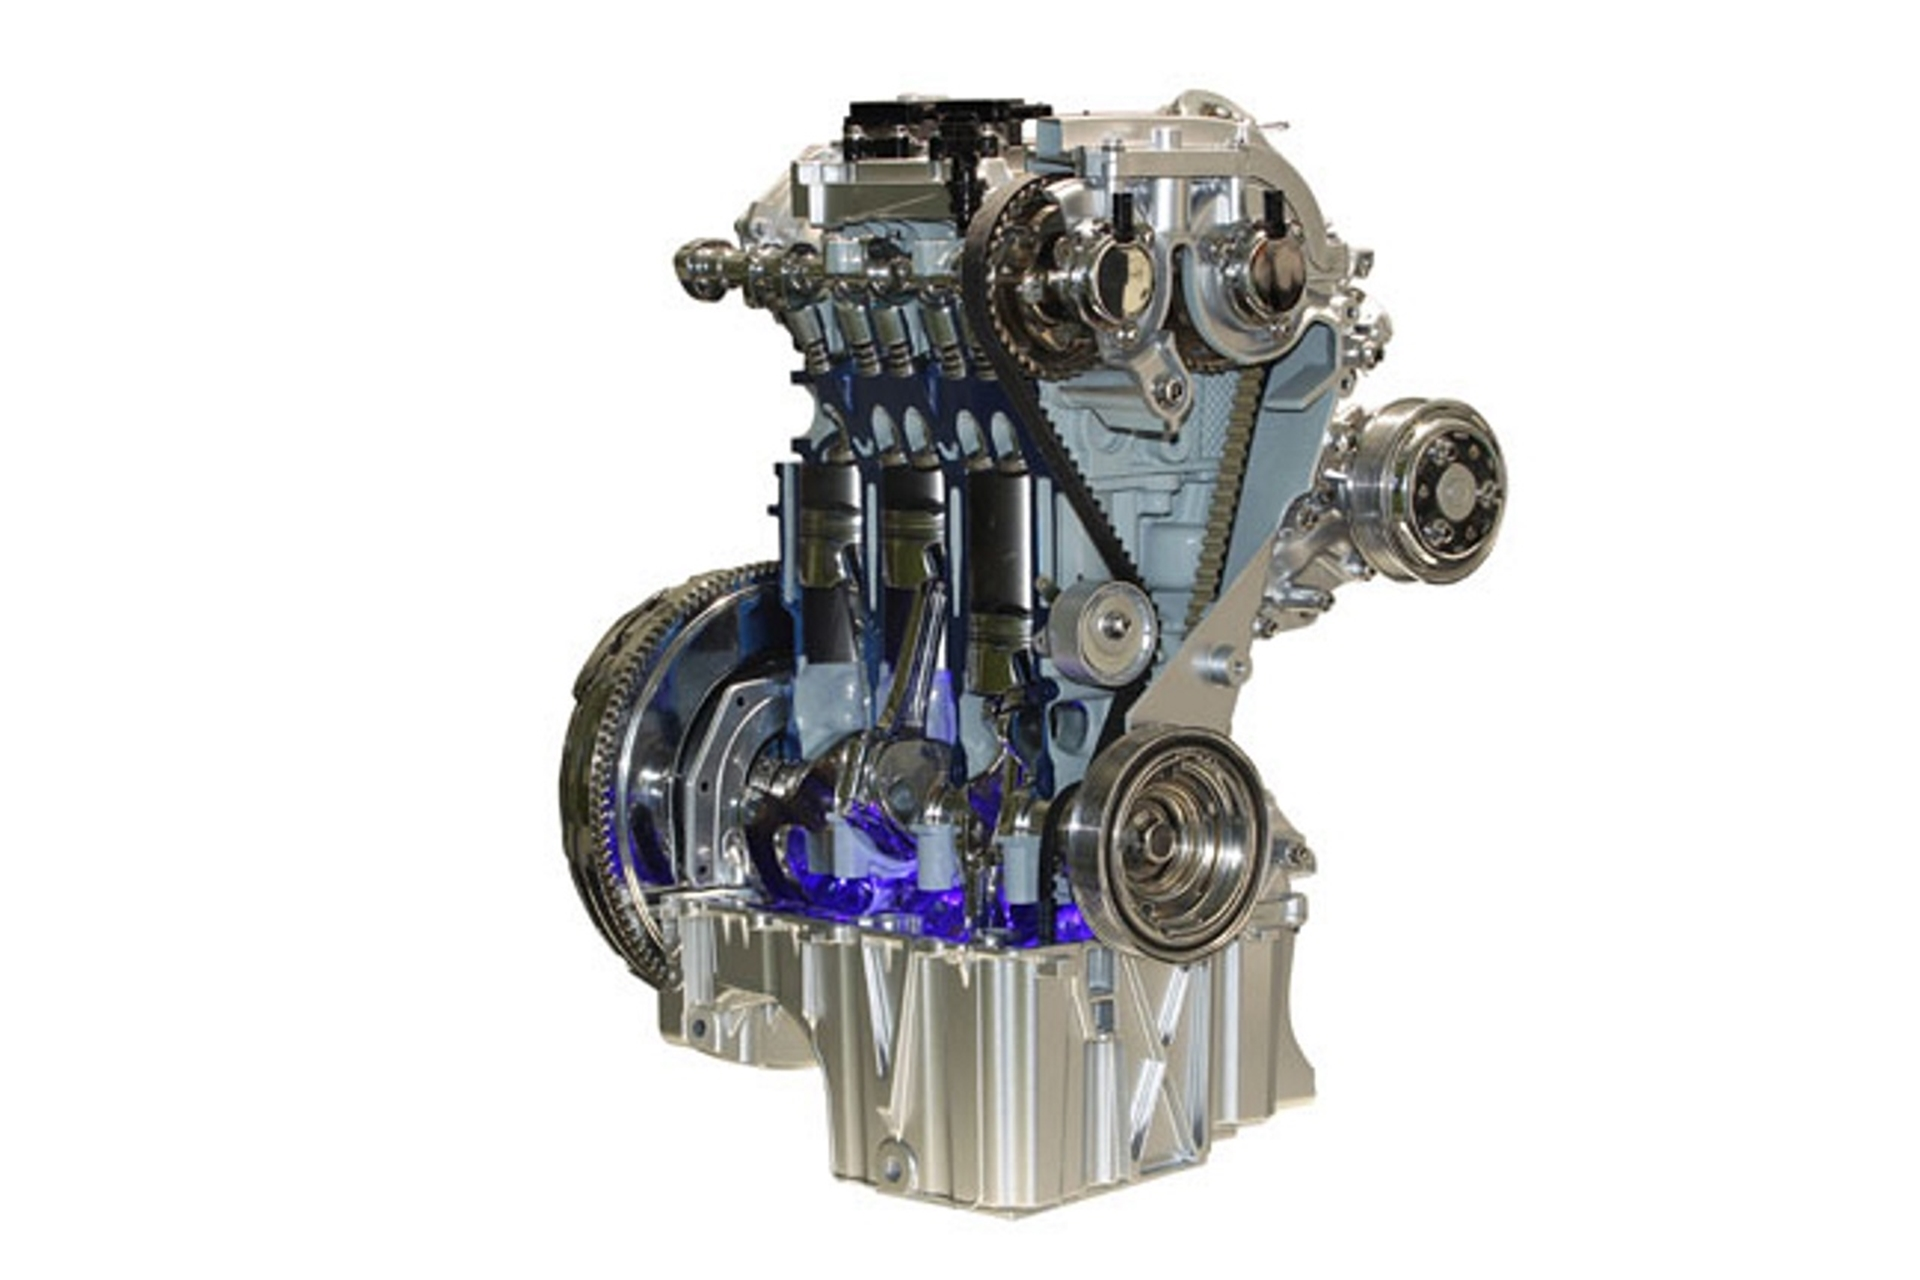 Ford International Engine of the Year